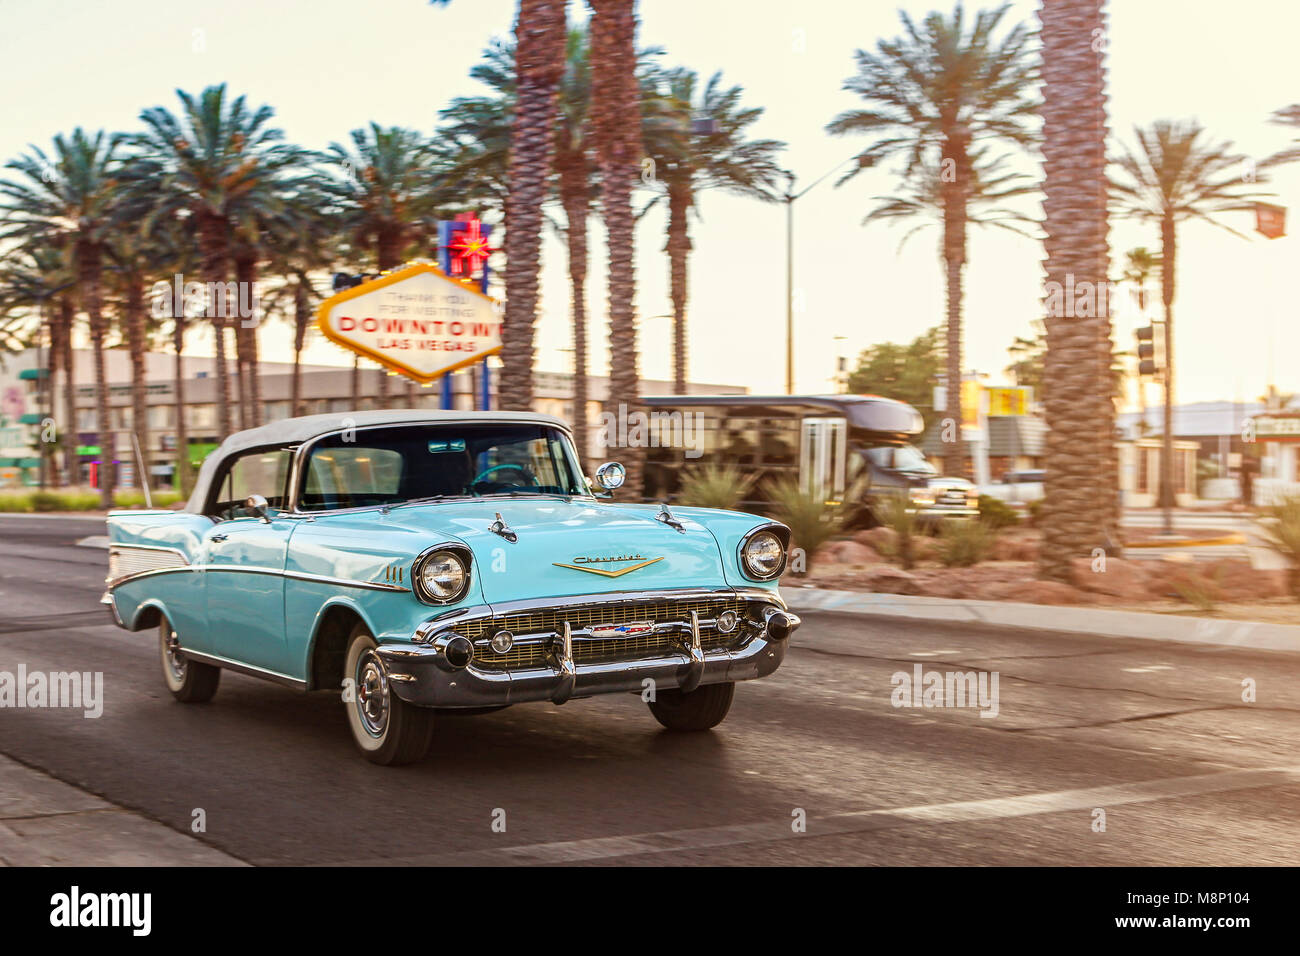 Chevrolet Las Vegas >> Classic Chevrolet In Downtown Las Vegas Stock Photo